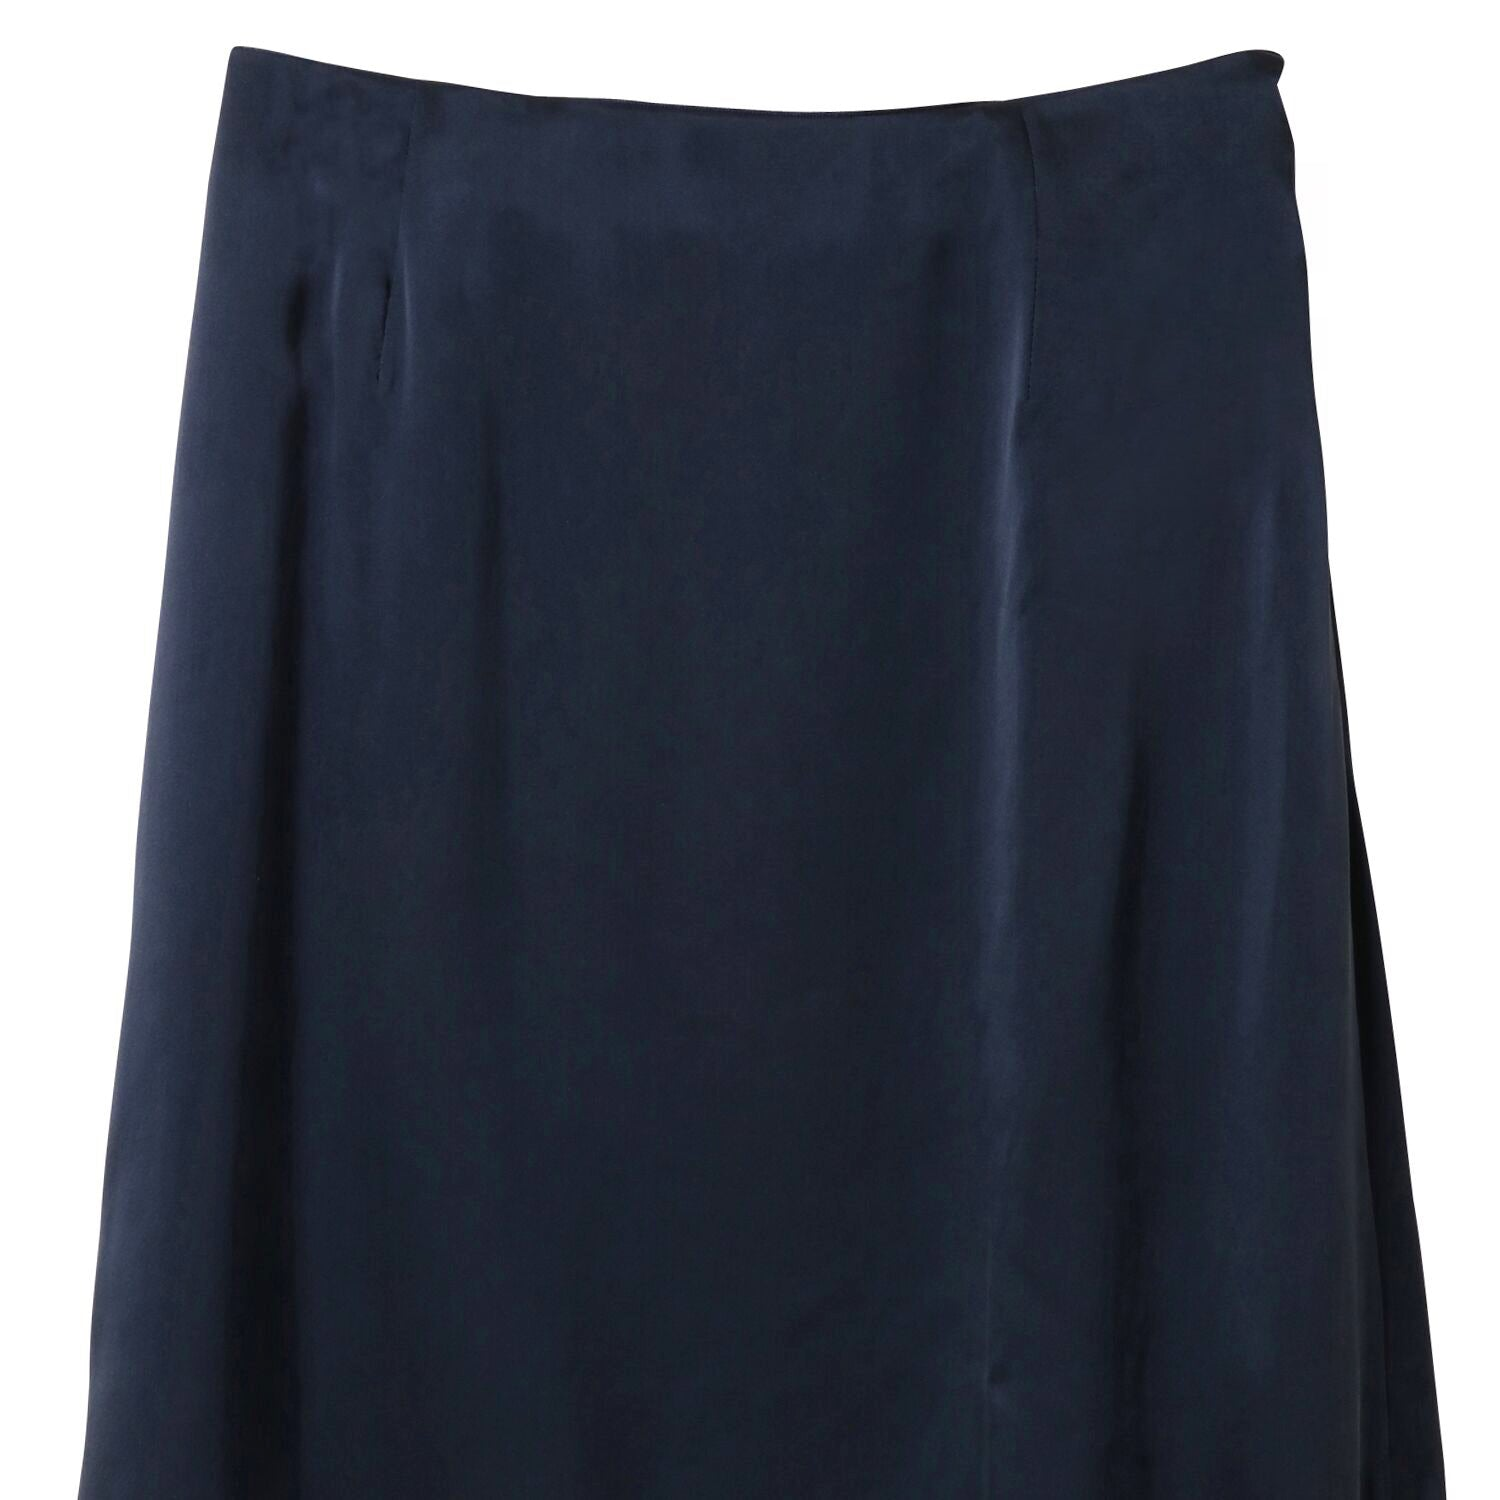 silk satin semi flare skirt [Navy]